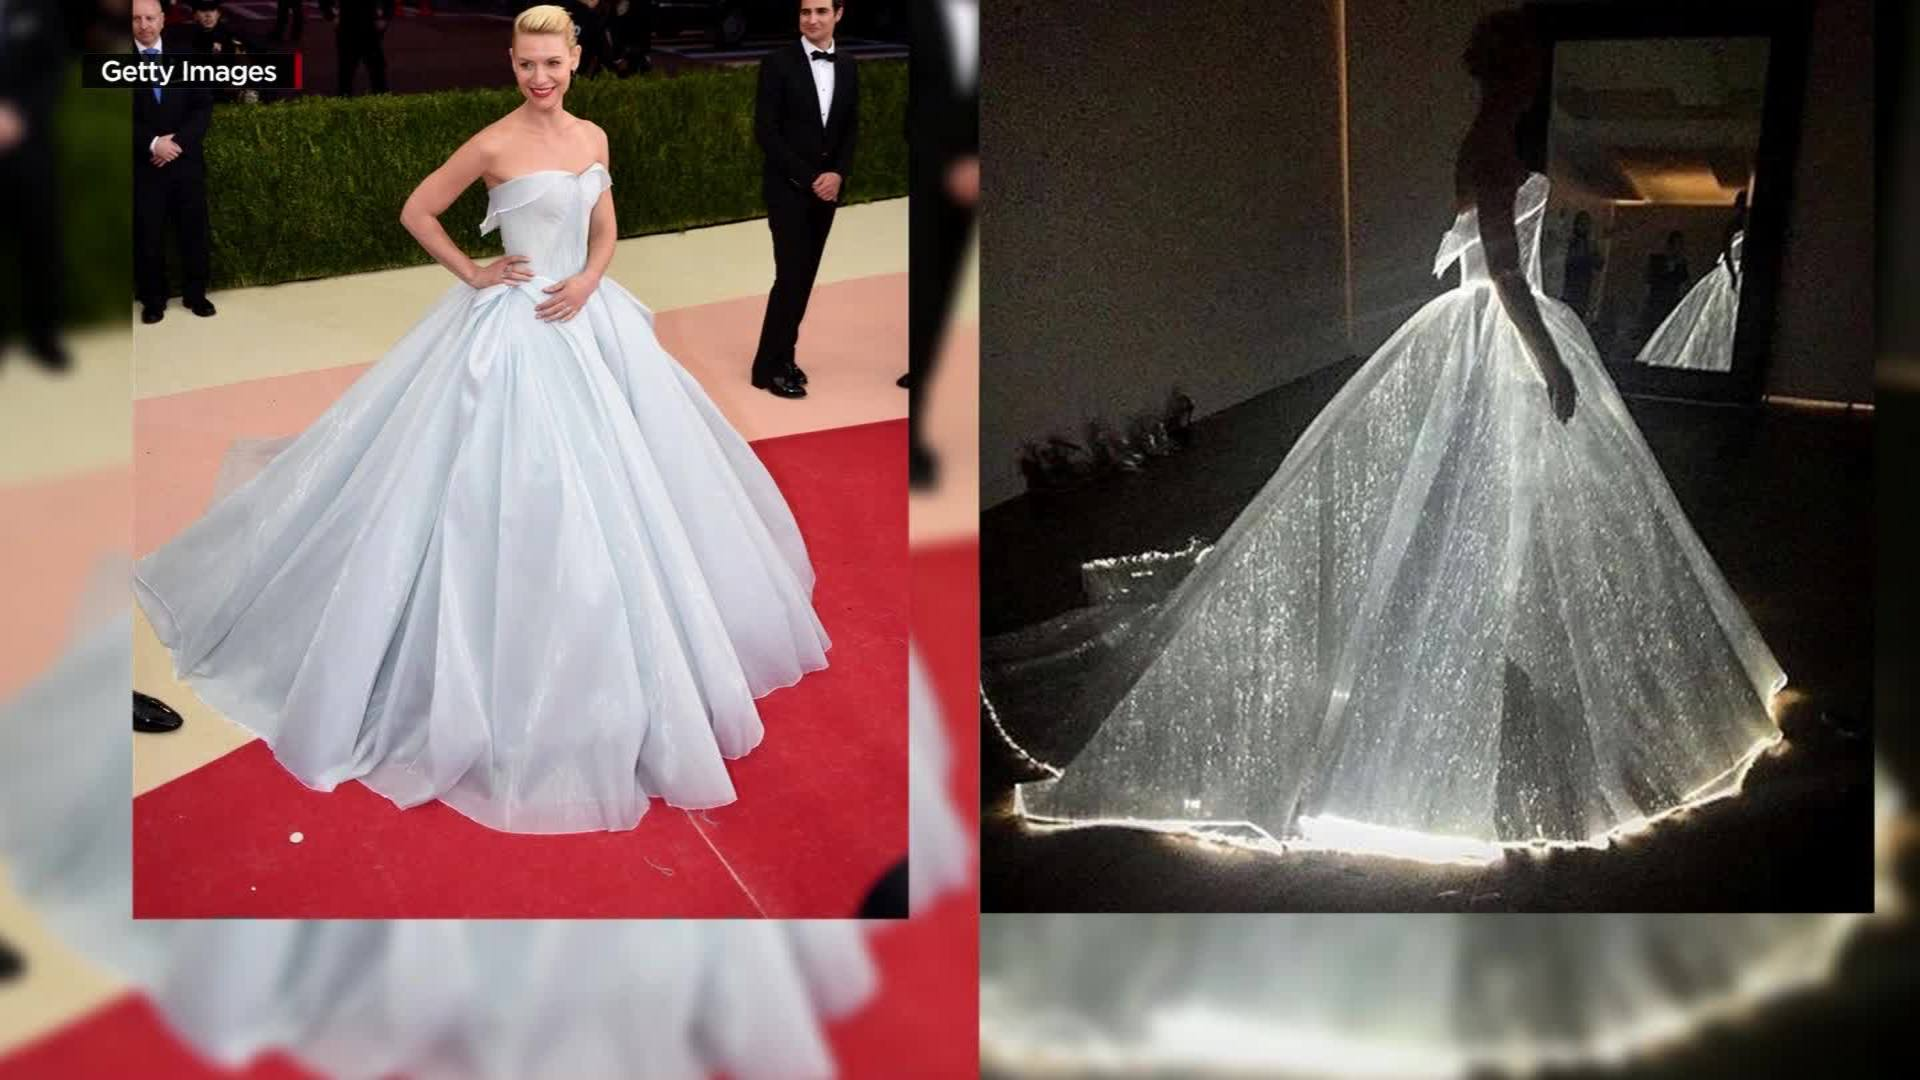 Claire Danes\' dress the brightest star at Met Gala - CNN Video